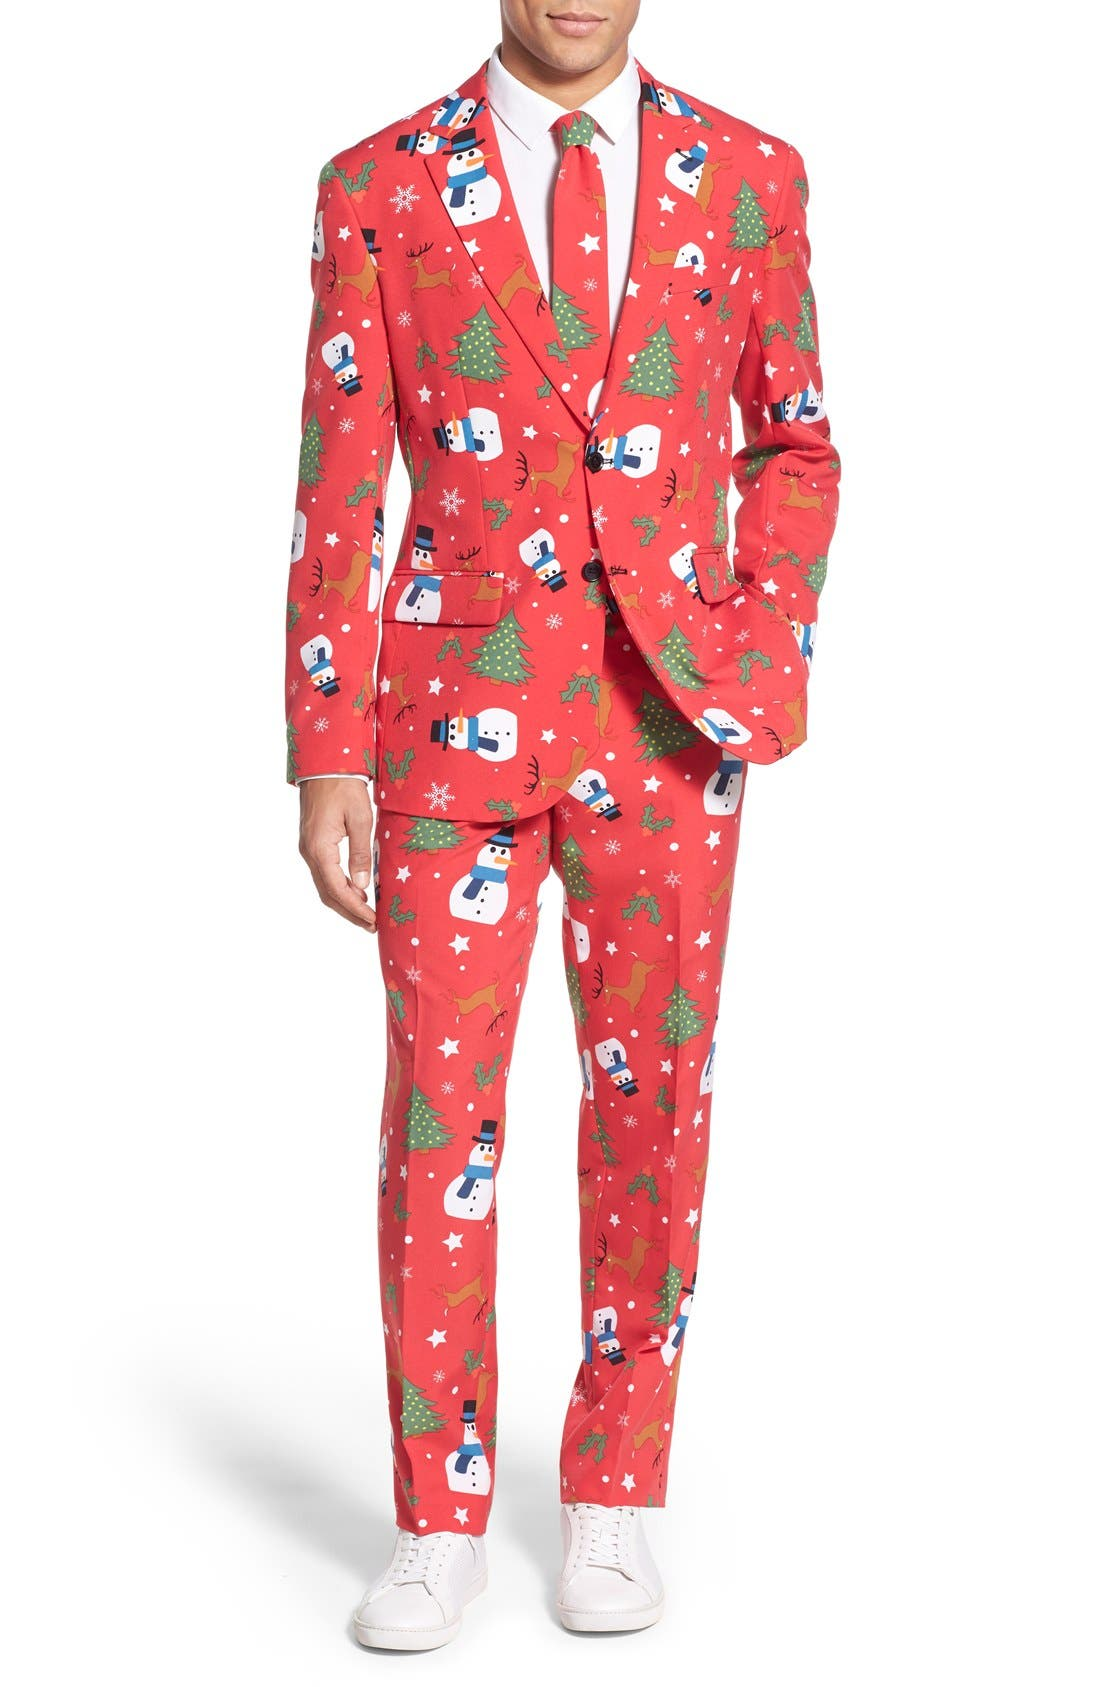 'Christmaster' Holiday Suit & Tie,                             Main thumbnail 1, color,                             Red